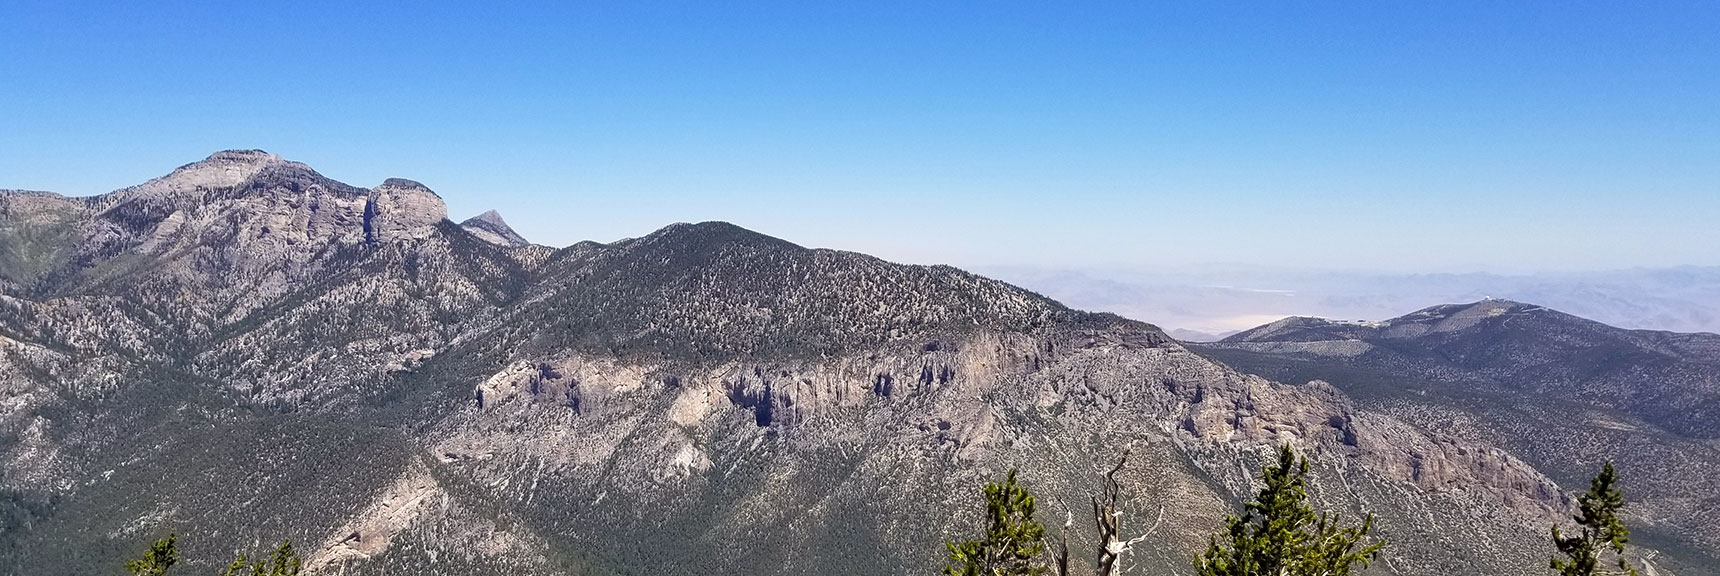 View of Mummy Mt. and Fletcher Peak from Harris Mountain, Nevada